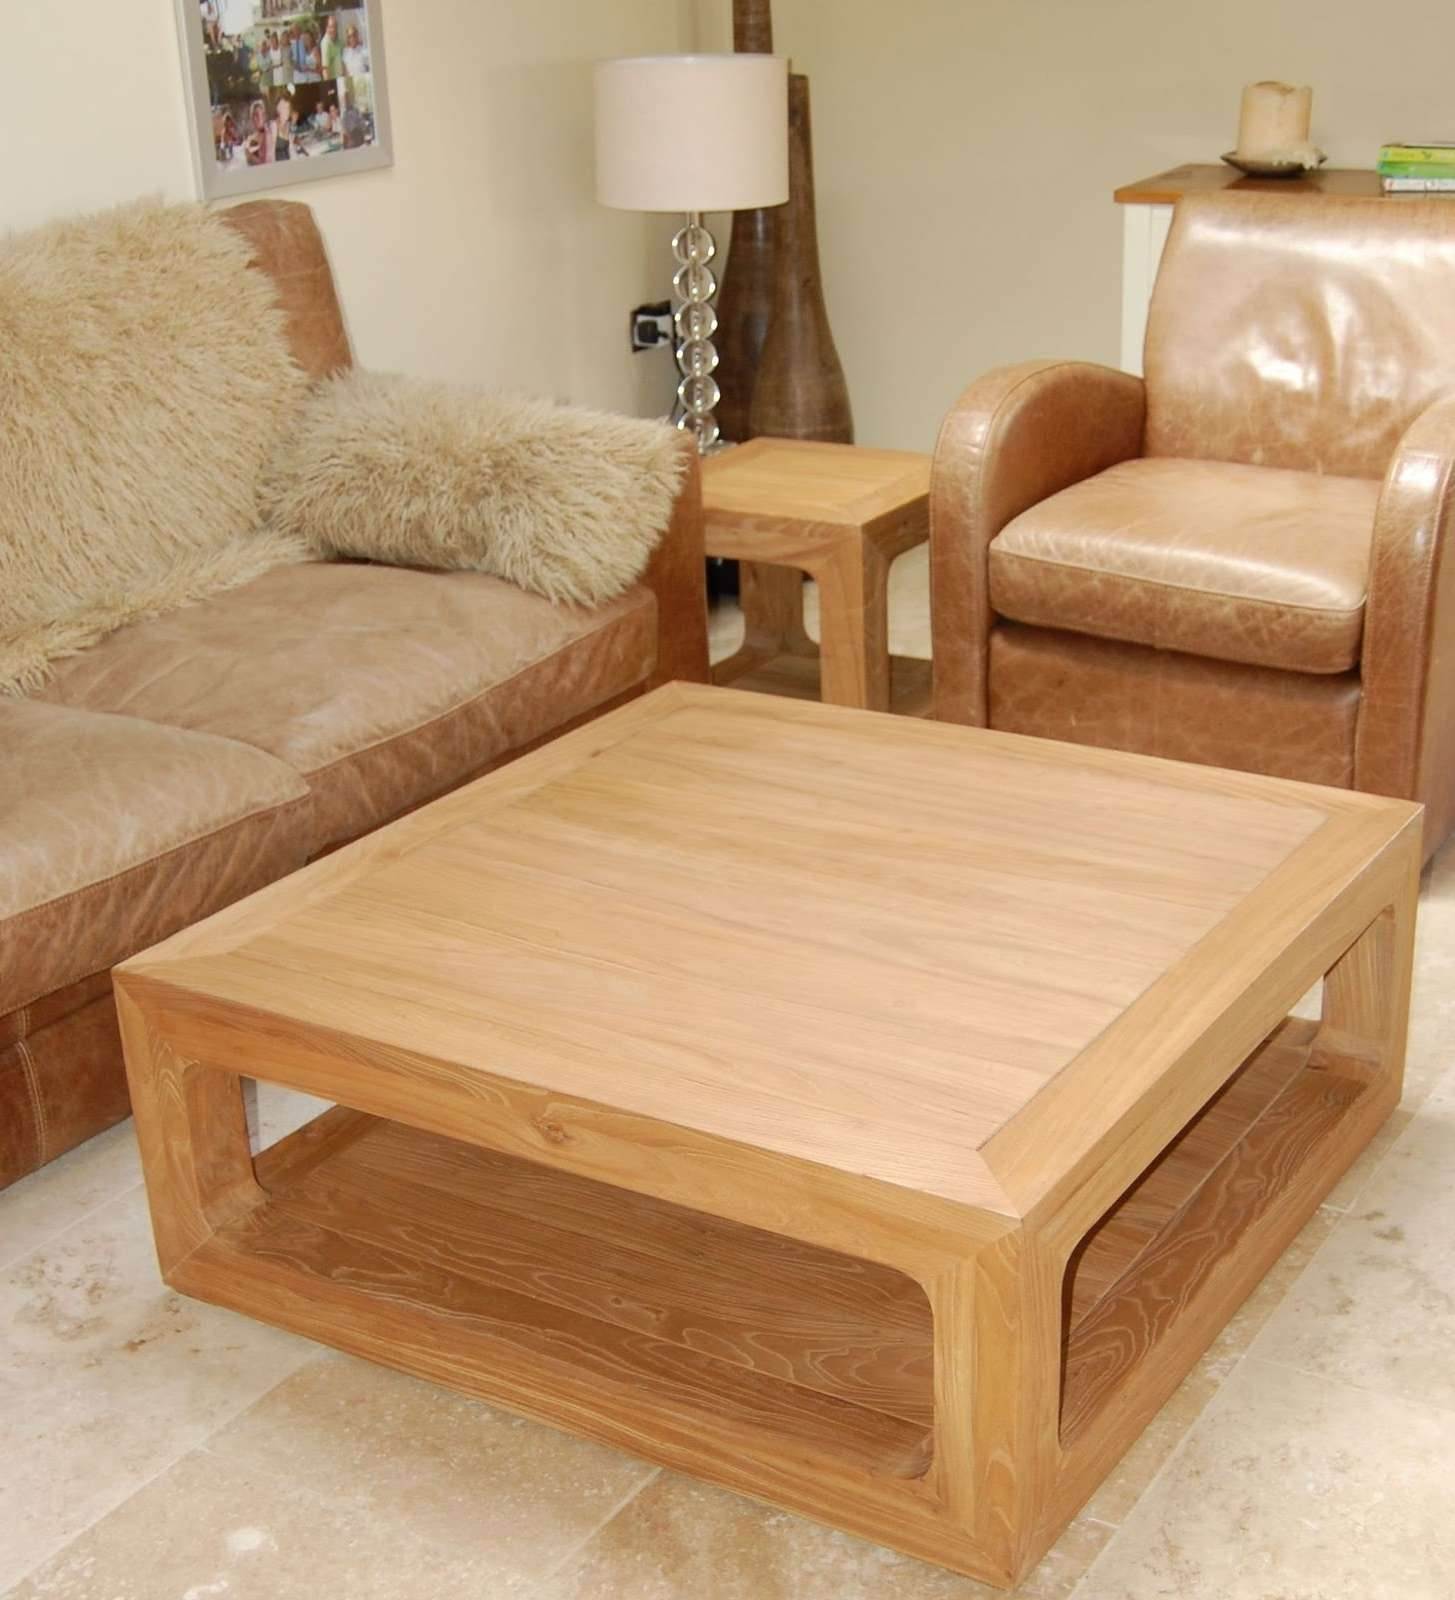 Square Coffee Table Rounded Corners • Table Ideas Within Recent Coffee Tables With Rounded Corners (View 16 of 20)